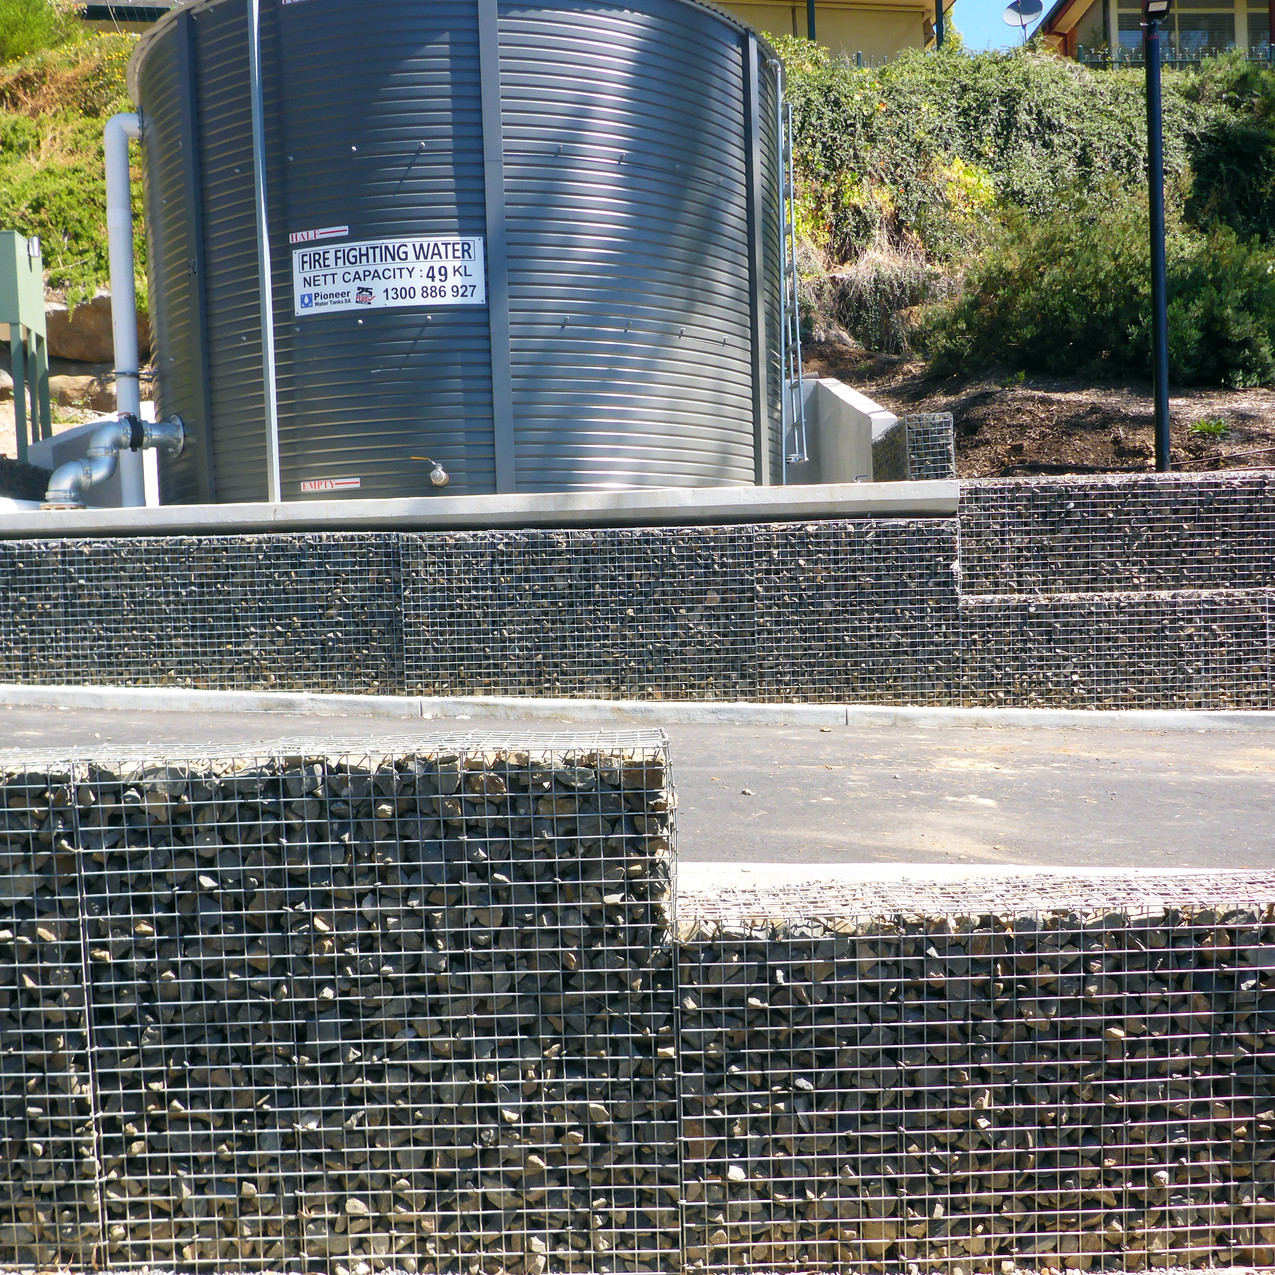 Rockweld stepped retaining walls